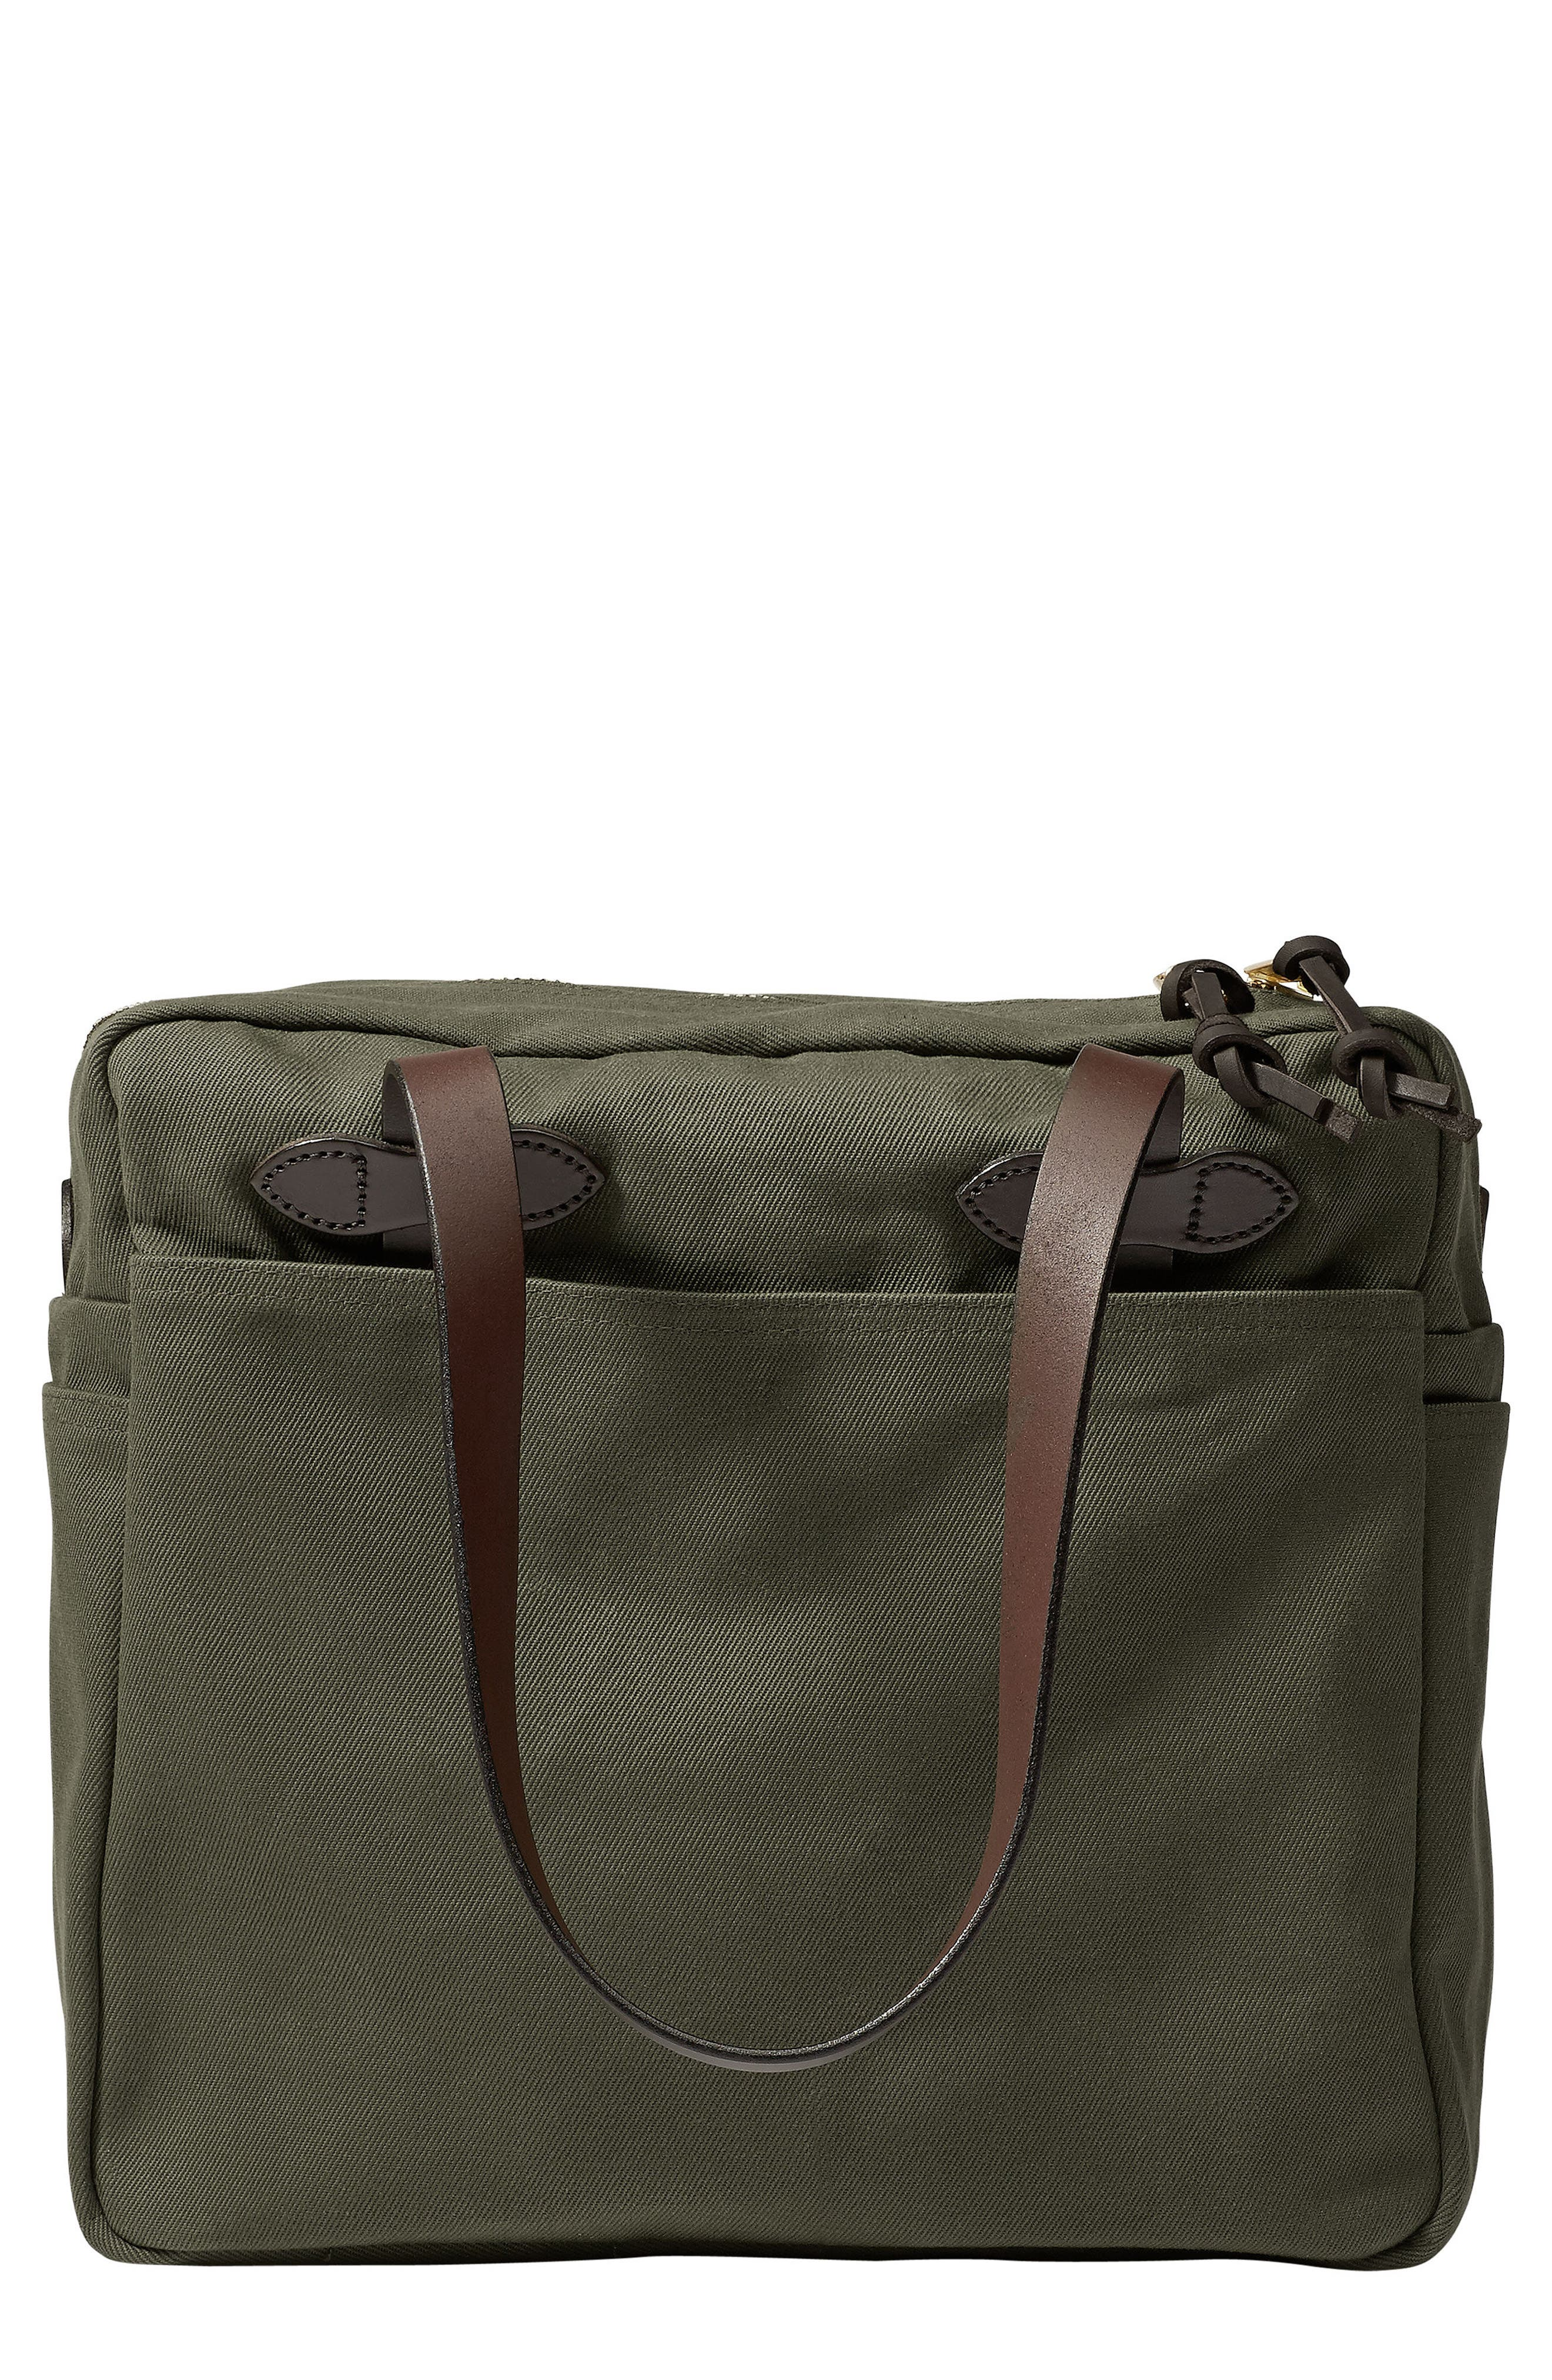 FILSON RUGGED TWILL ZIP TOTE BAG - GREEN